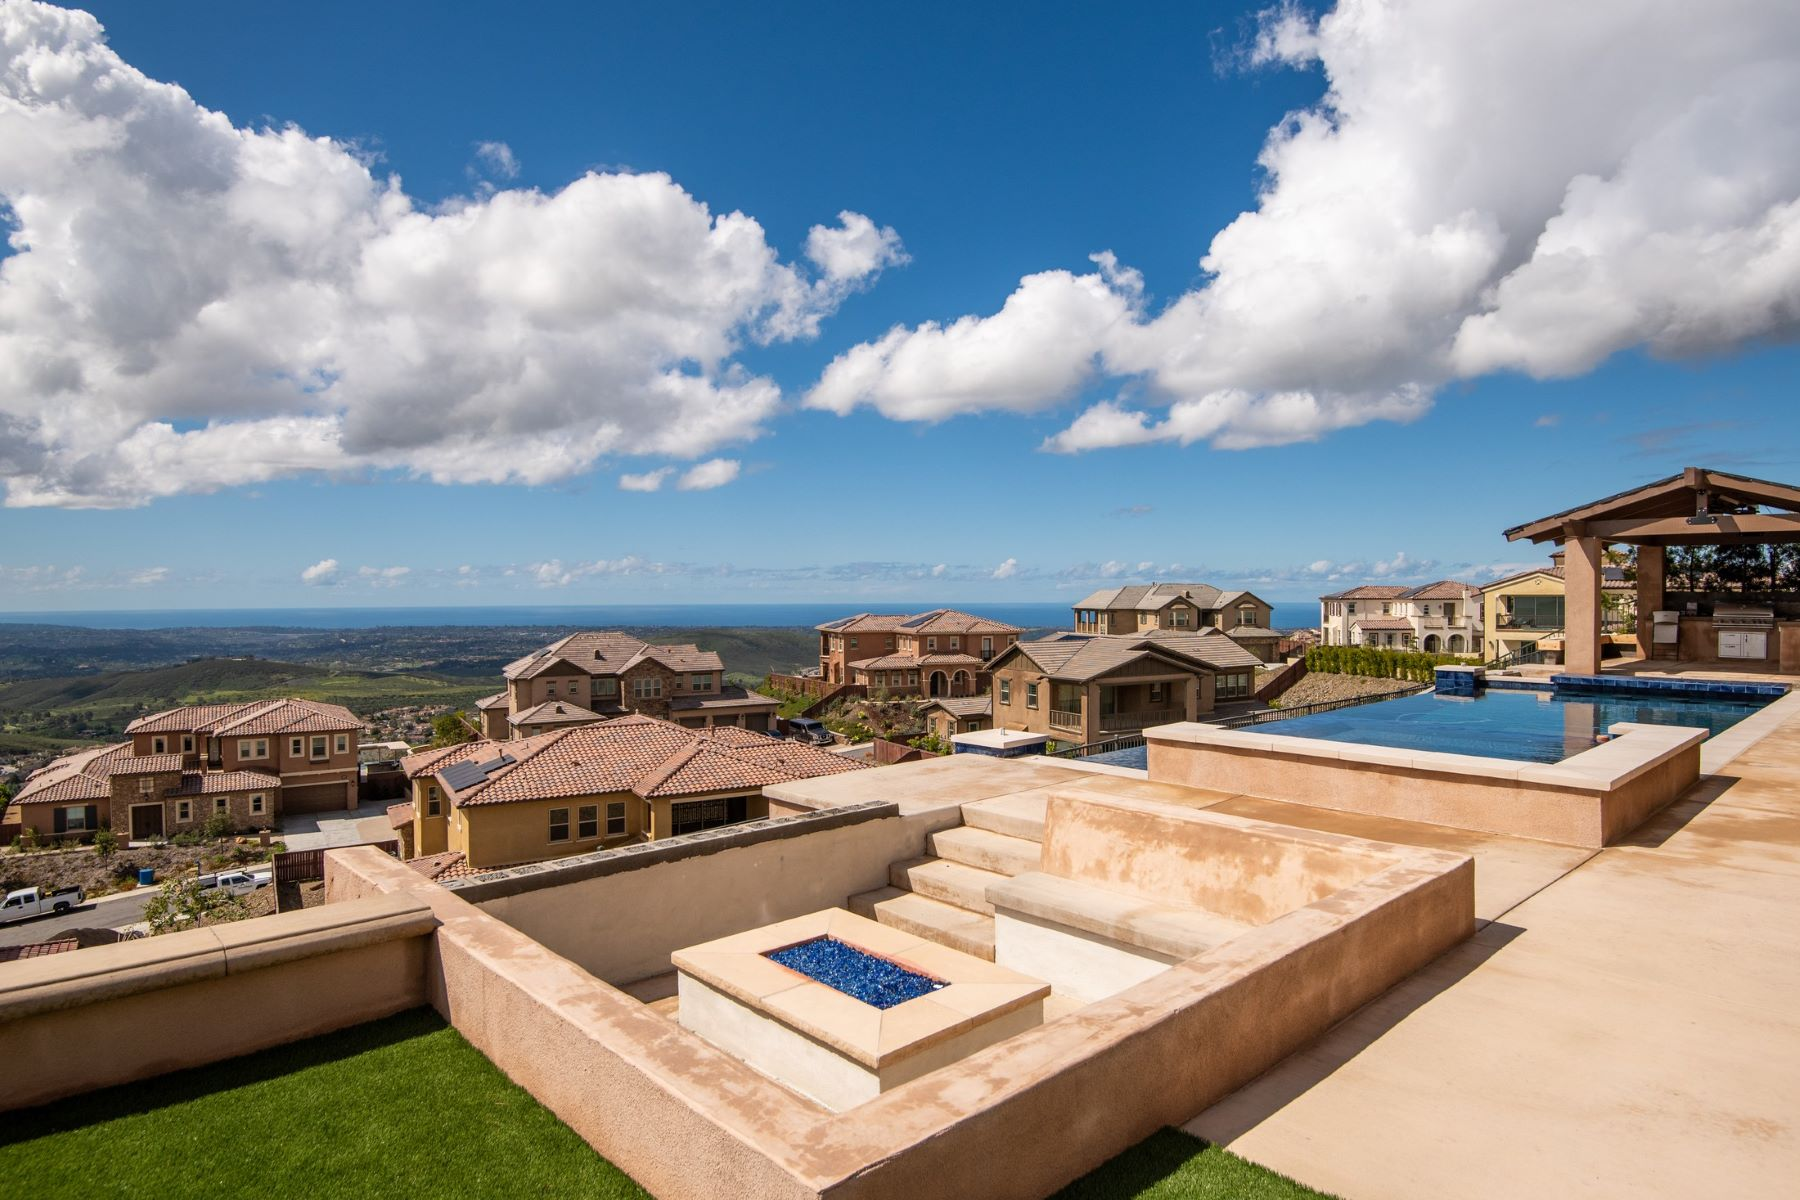 Single Family Homes for Sale at Spectacular Ocean & Mountain Views 1117 Jasper Court San Marcos, California 92078 United States